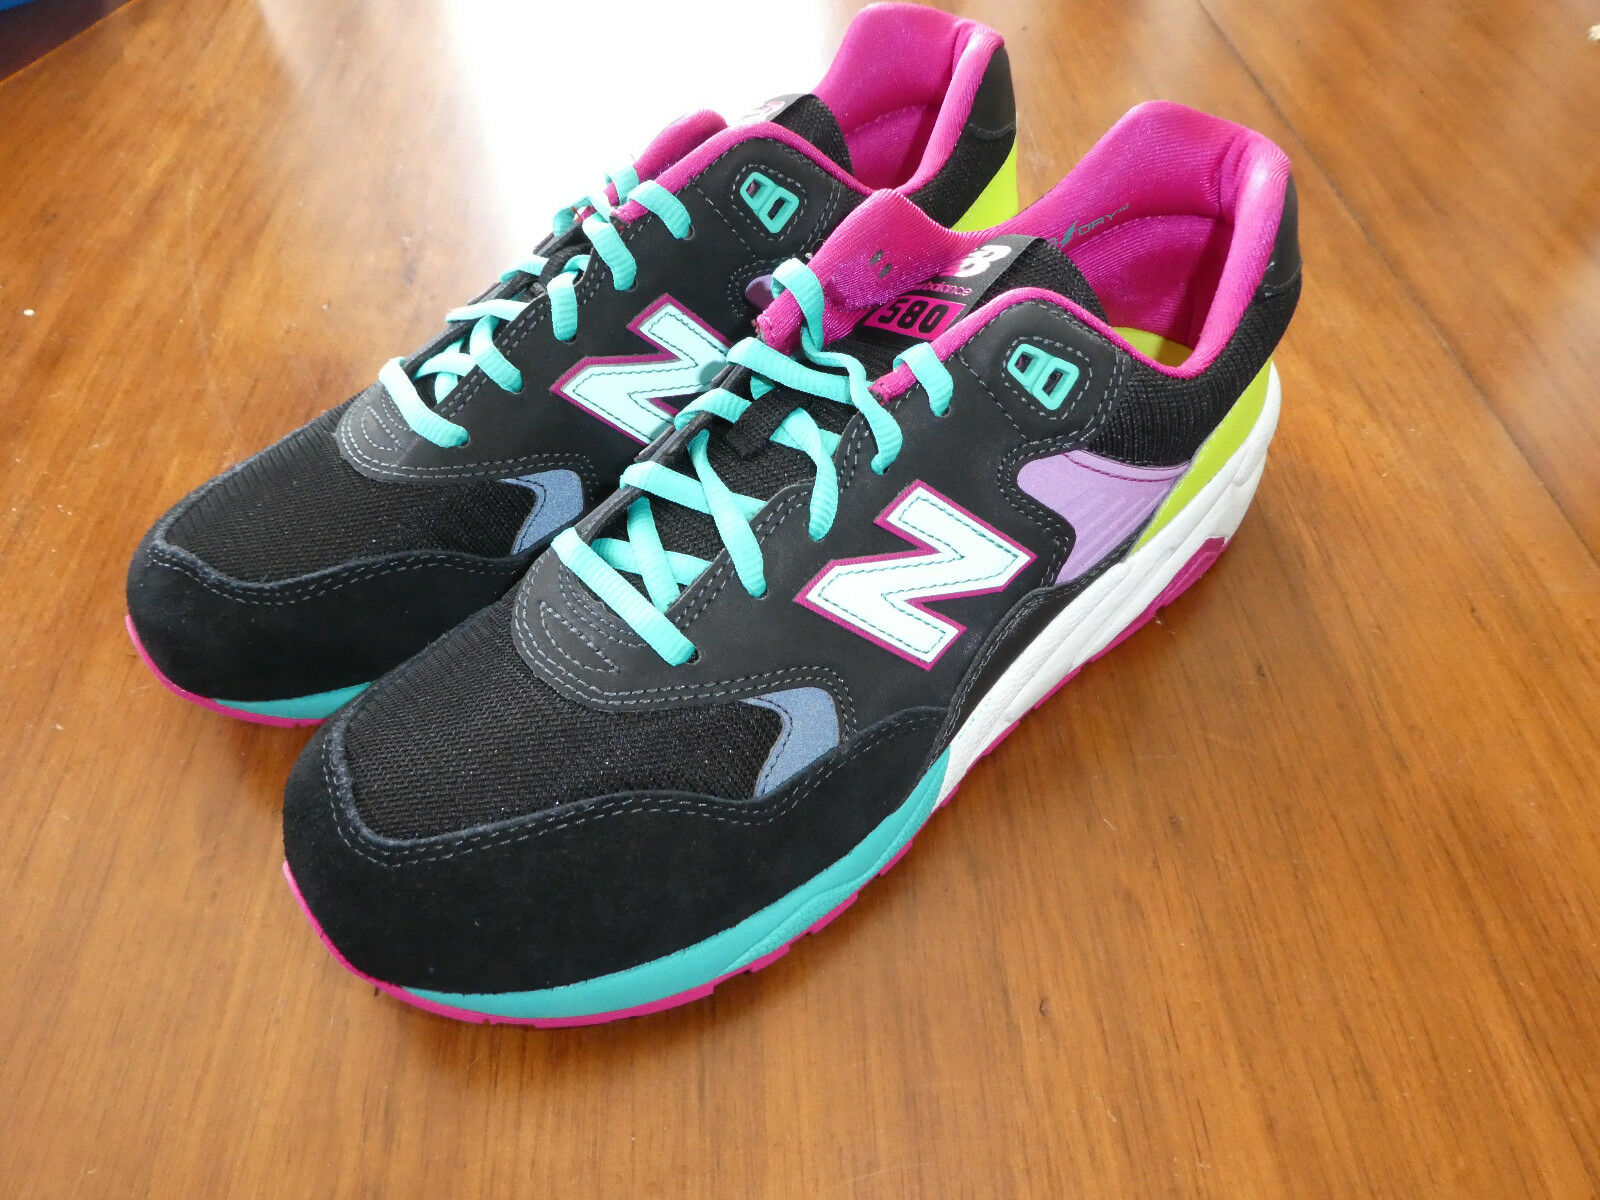 Mens New Balance MRT580BP shoes 580 Sneakers Size 9.5 black pink